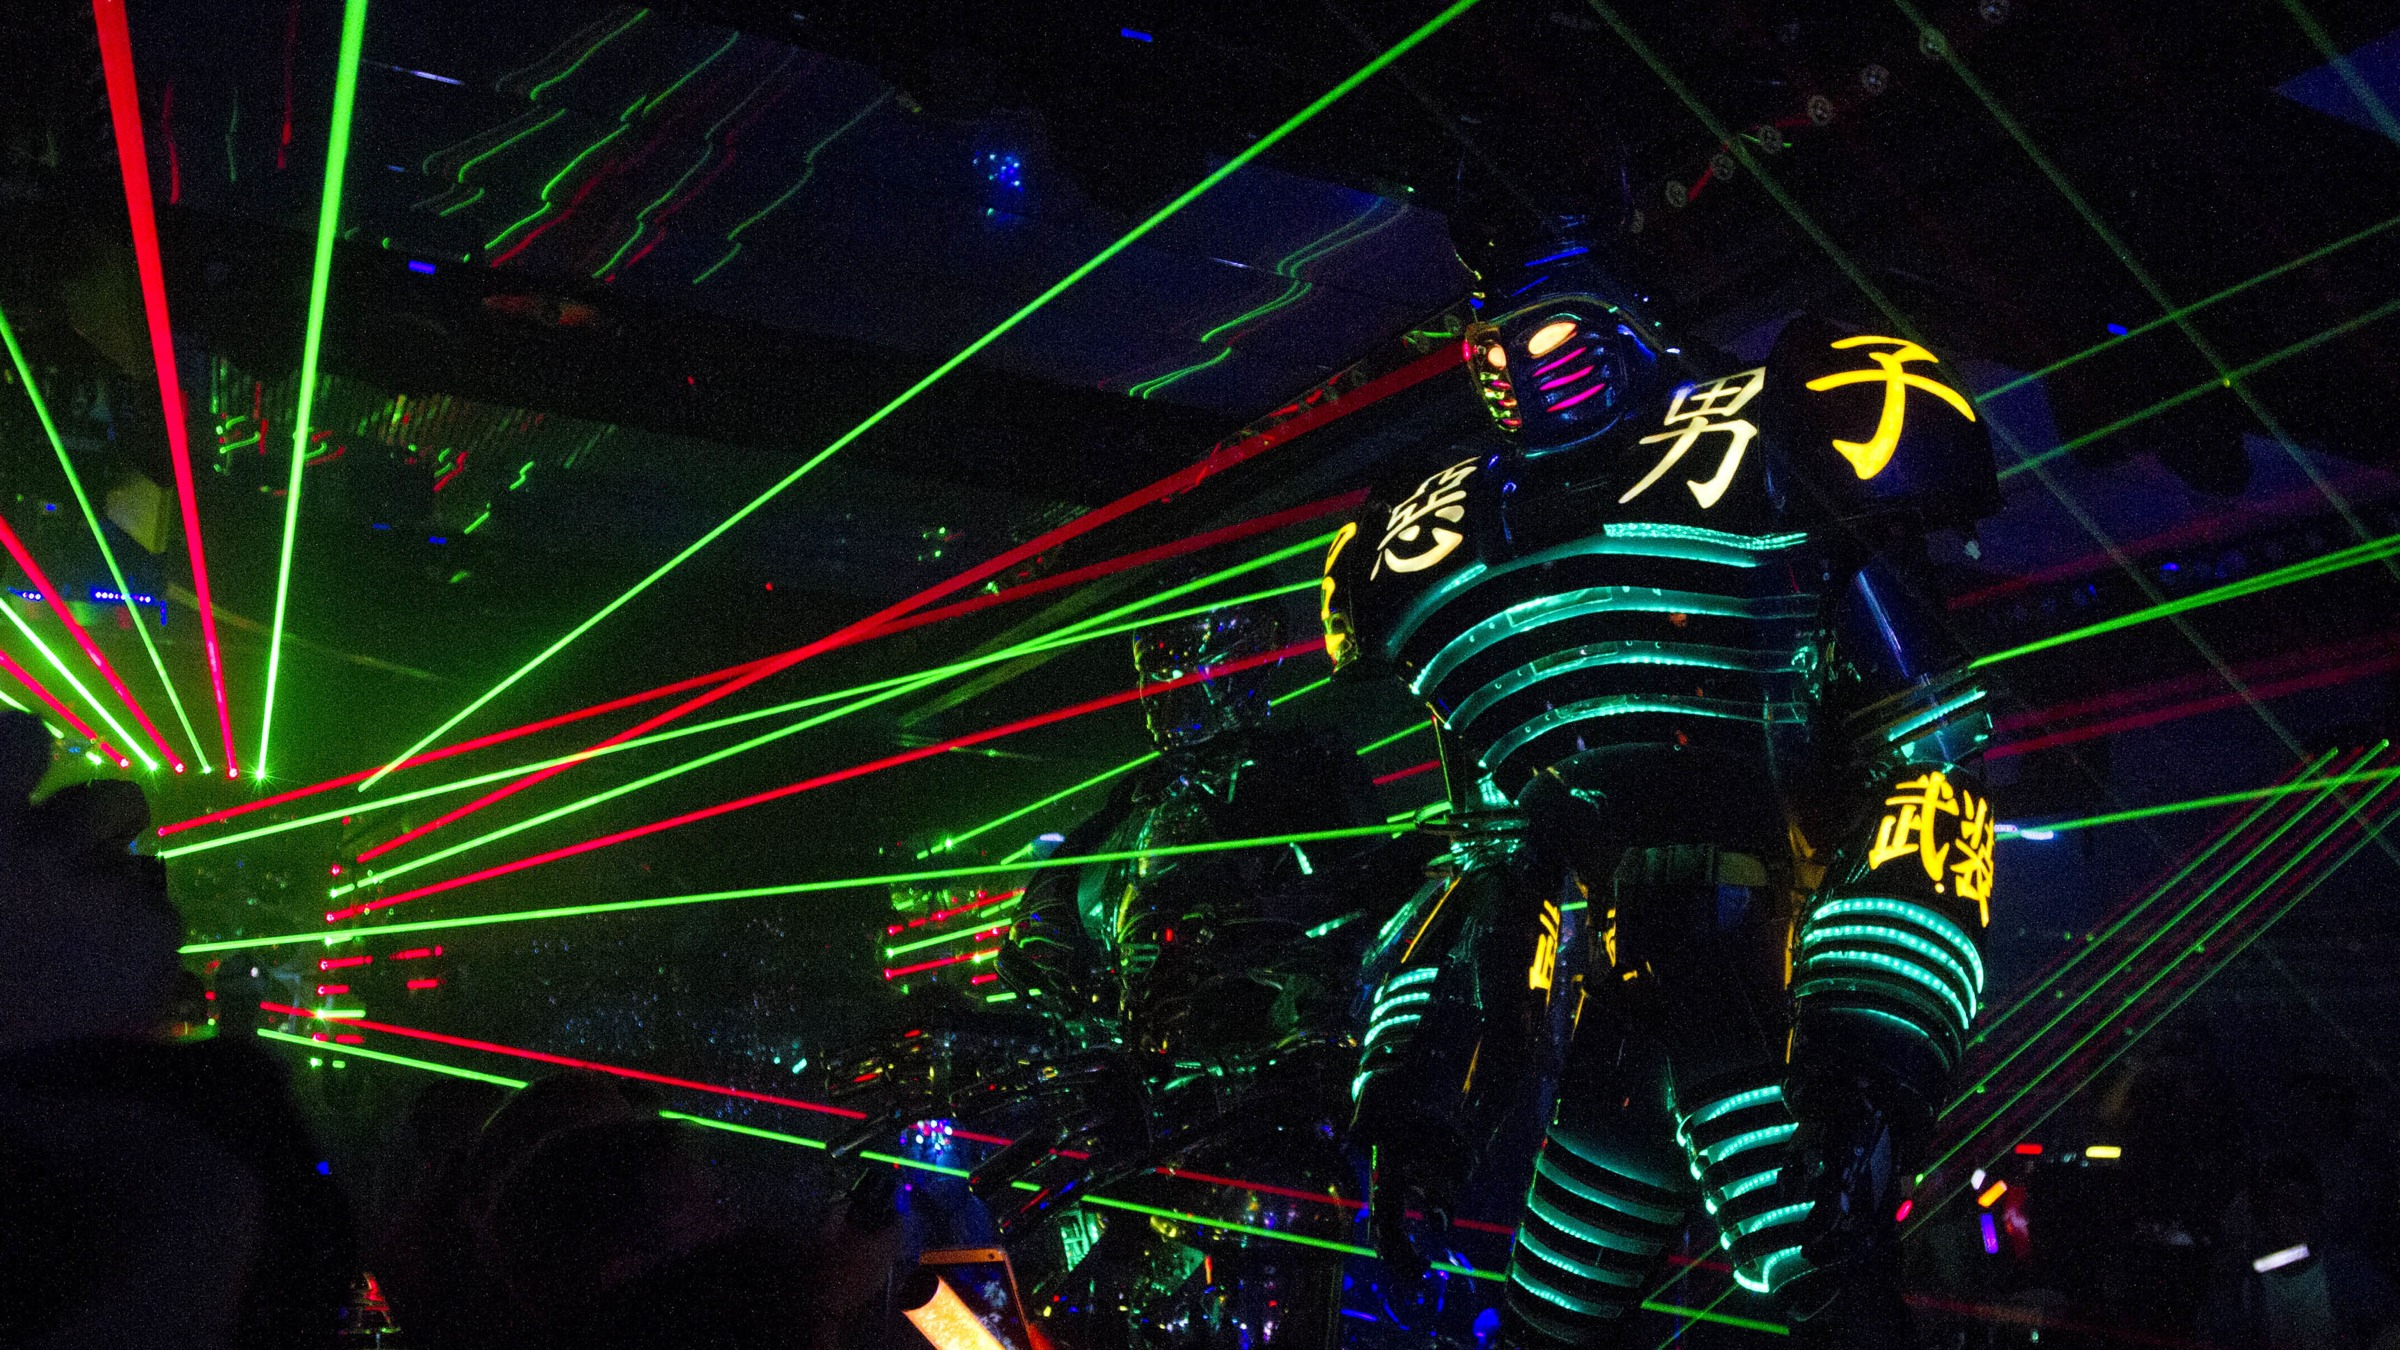 """Laser lights outline a robot during a performance at Robot Restaurant in Tokyo on Sunday October 6, 2013. Laser beams, robots, outlandish outfits, and flashing lights complete the otherworldly atmosphere of the cosplay, or """"costume play"""" themed restaurant. (AP Photo/Jacquelyn Martin)"""